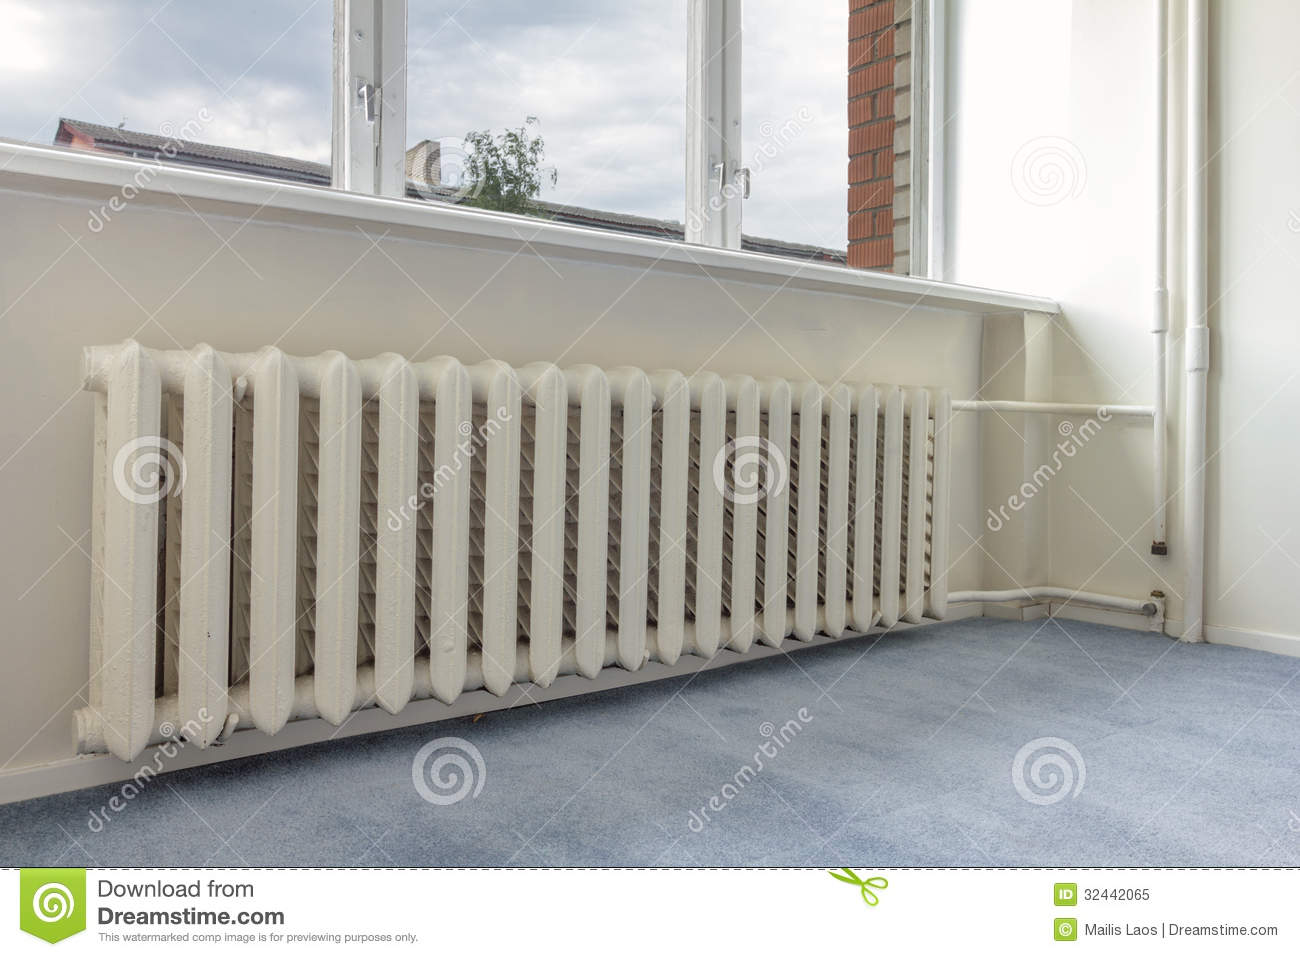 Interior close up photo of apartment central heating system. #6E5E4F